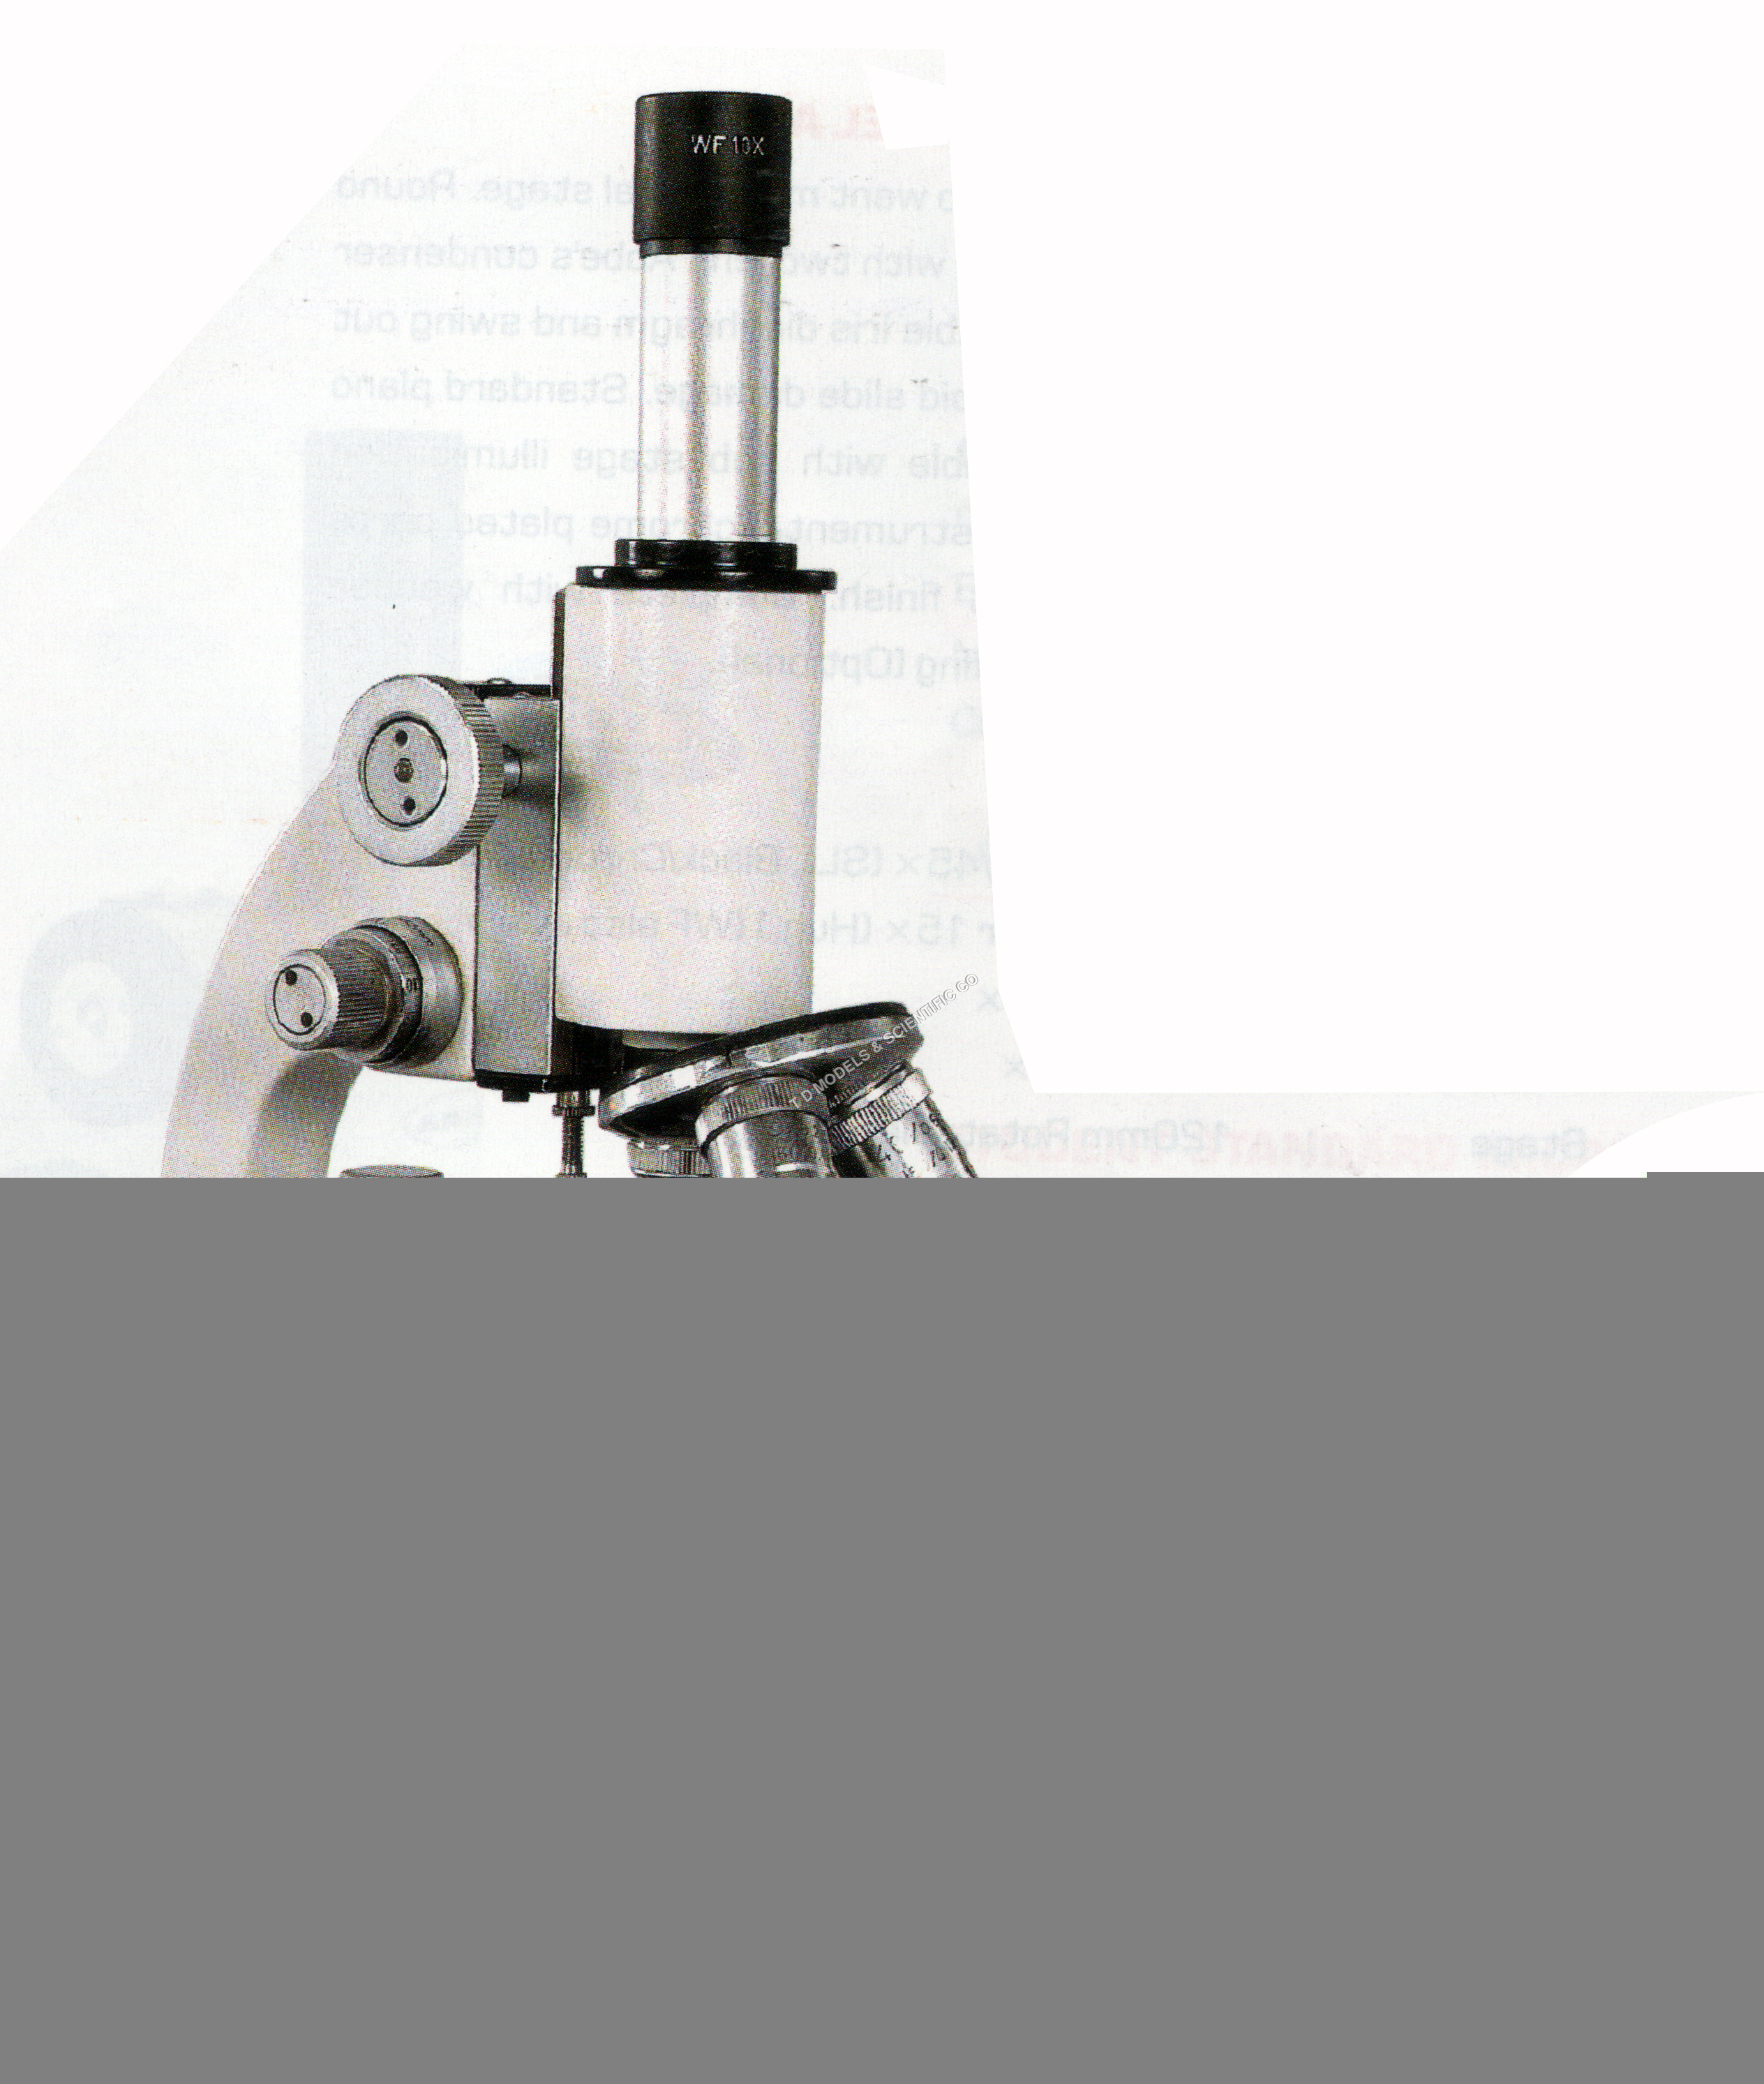 LABORATORY MICROSCOPE MODEL A1